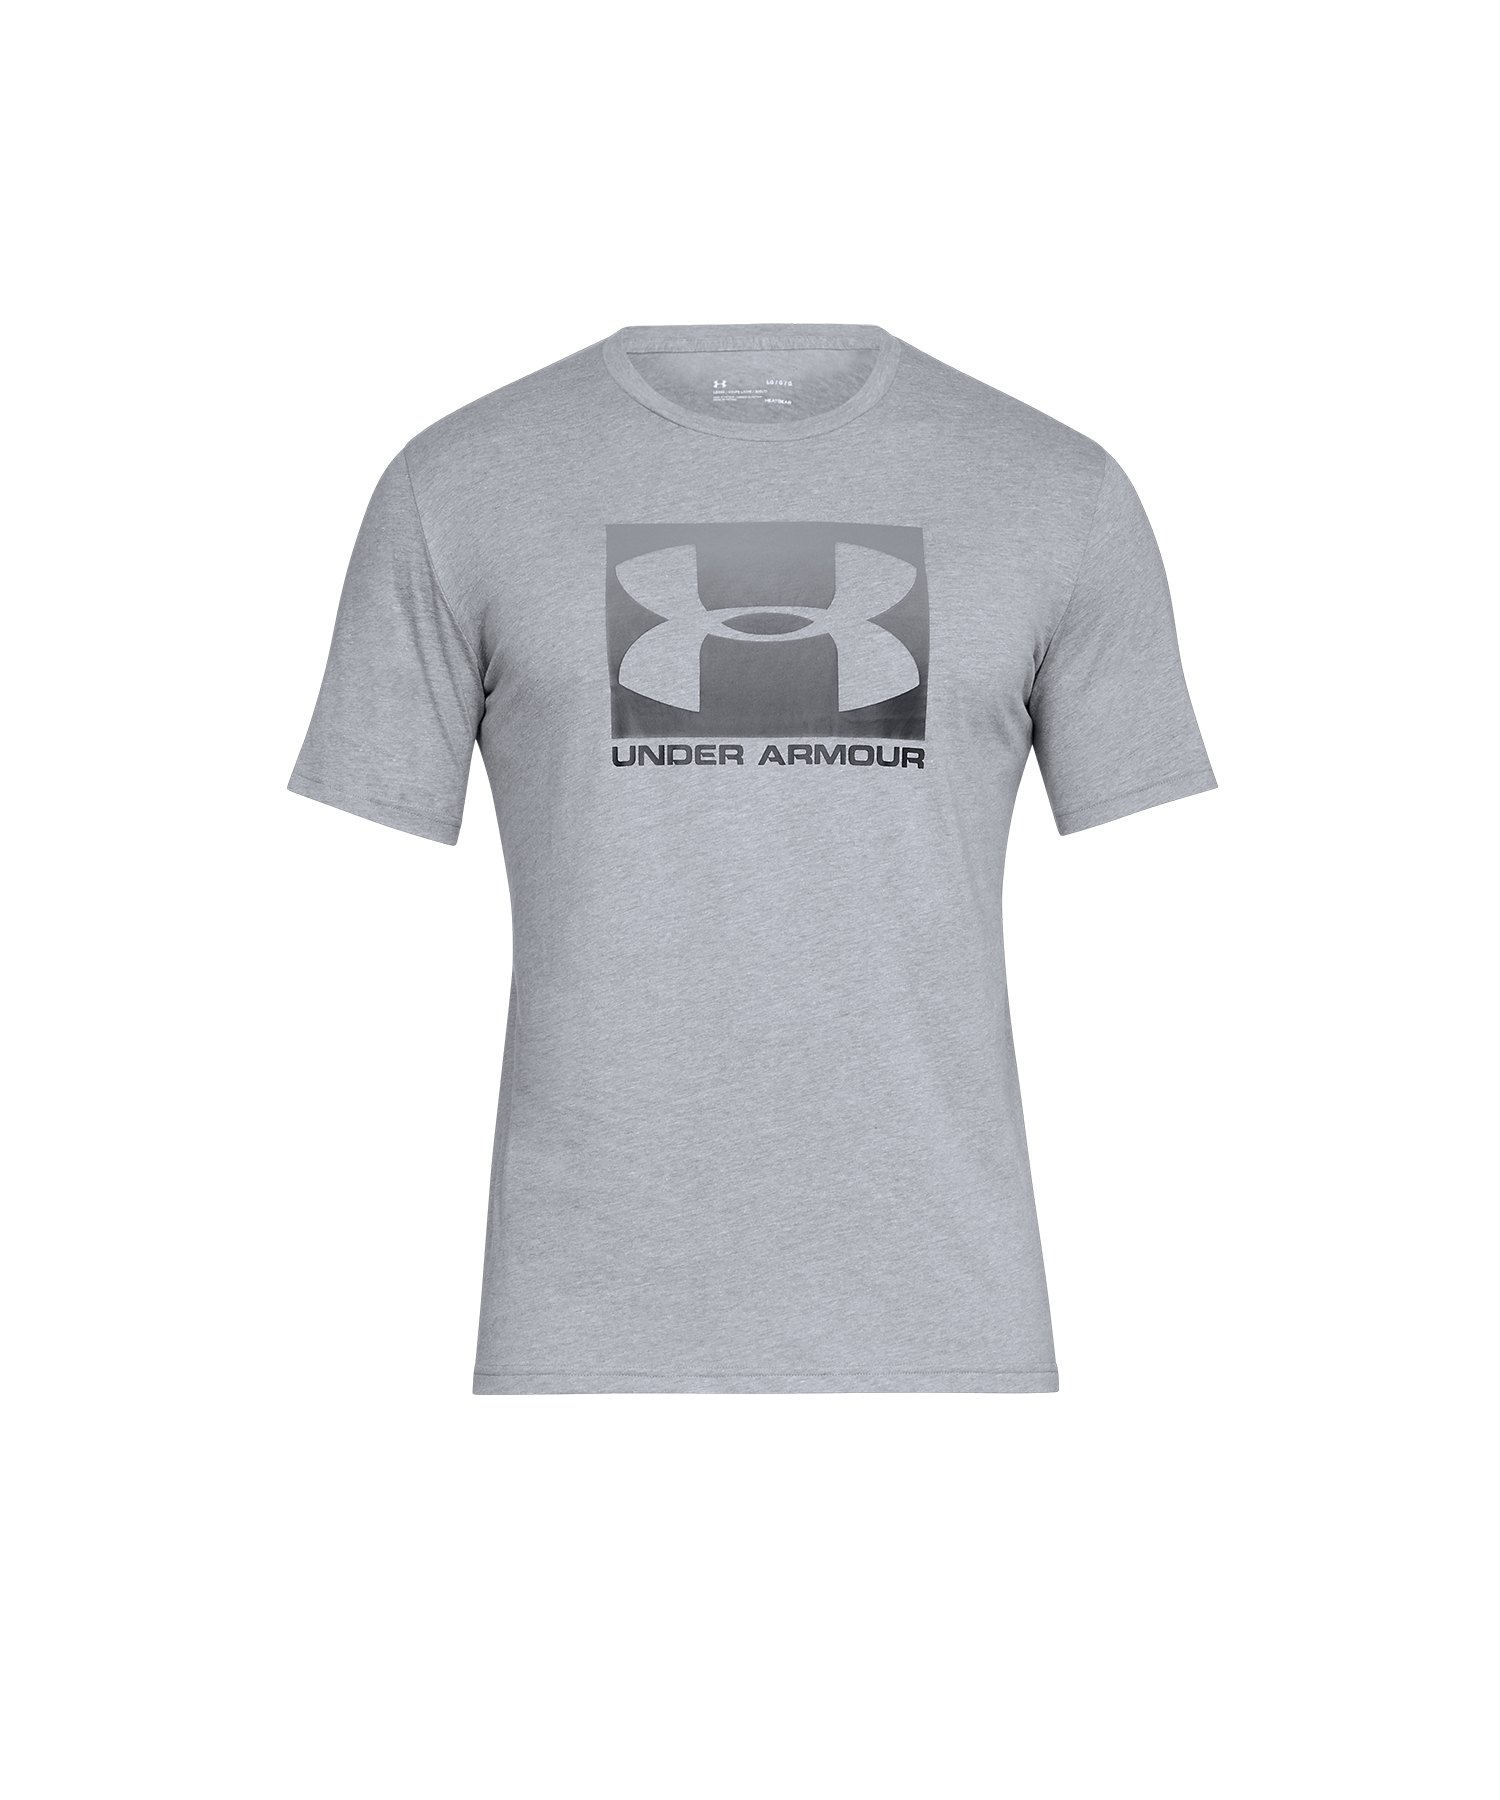 Under Armour Boxed Sportstyle T-Shirt F035 - Grau